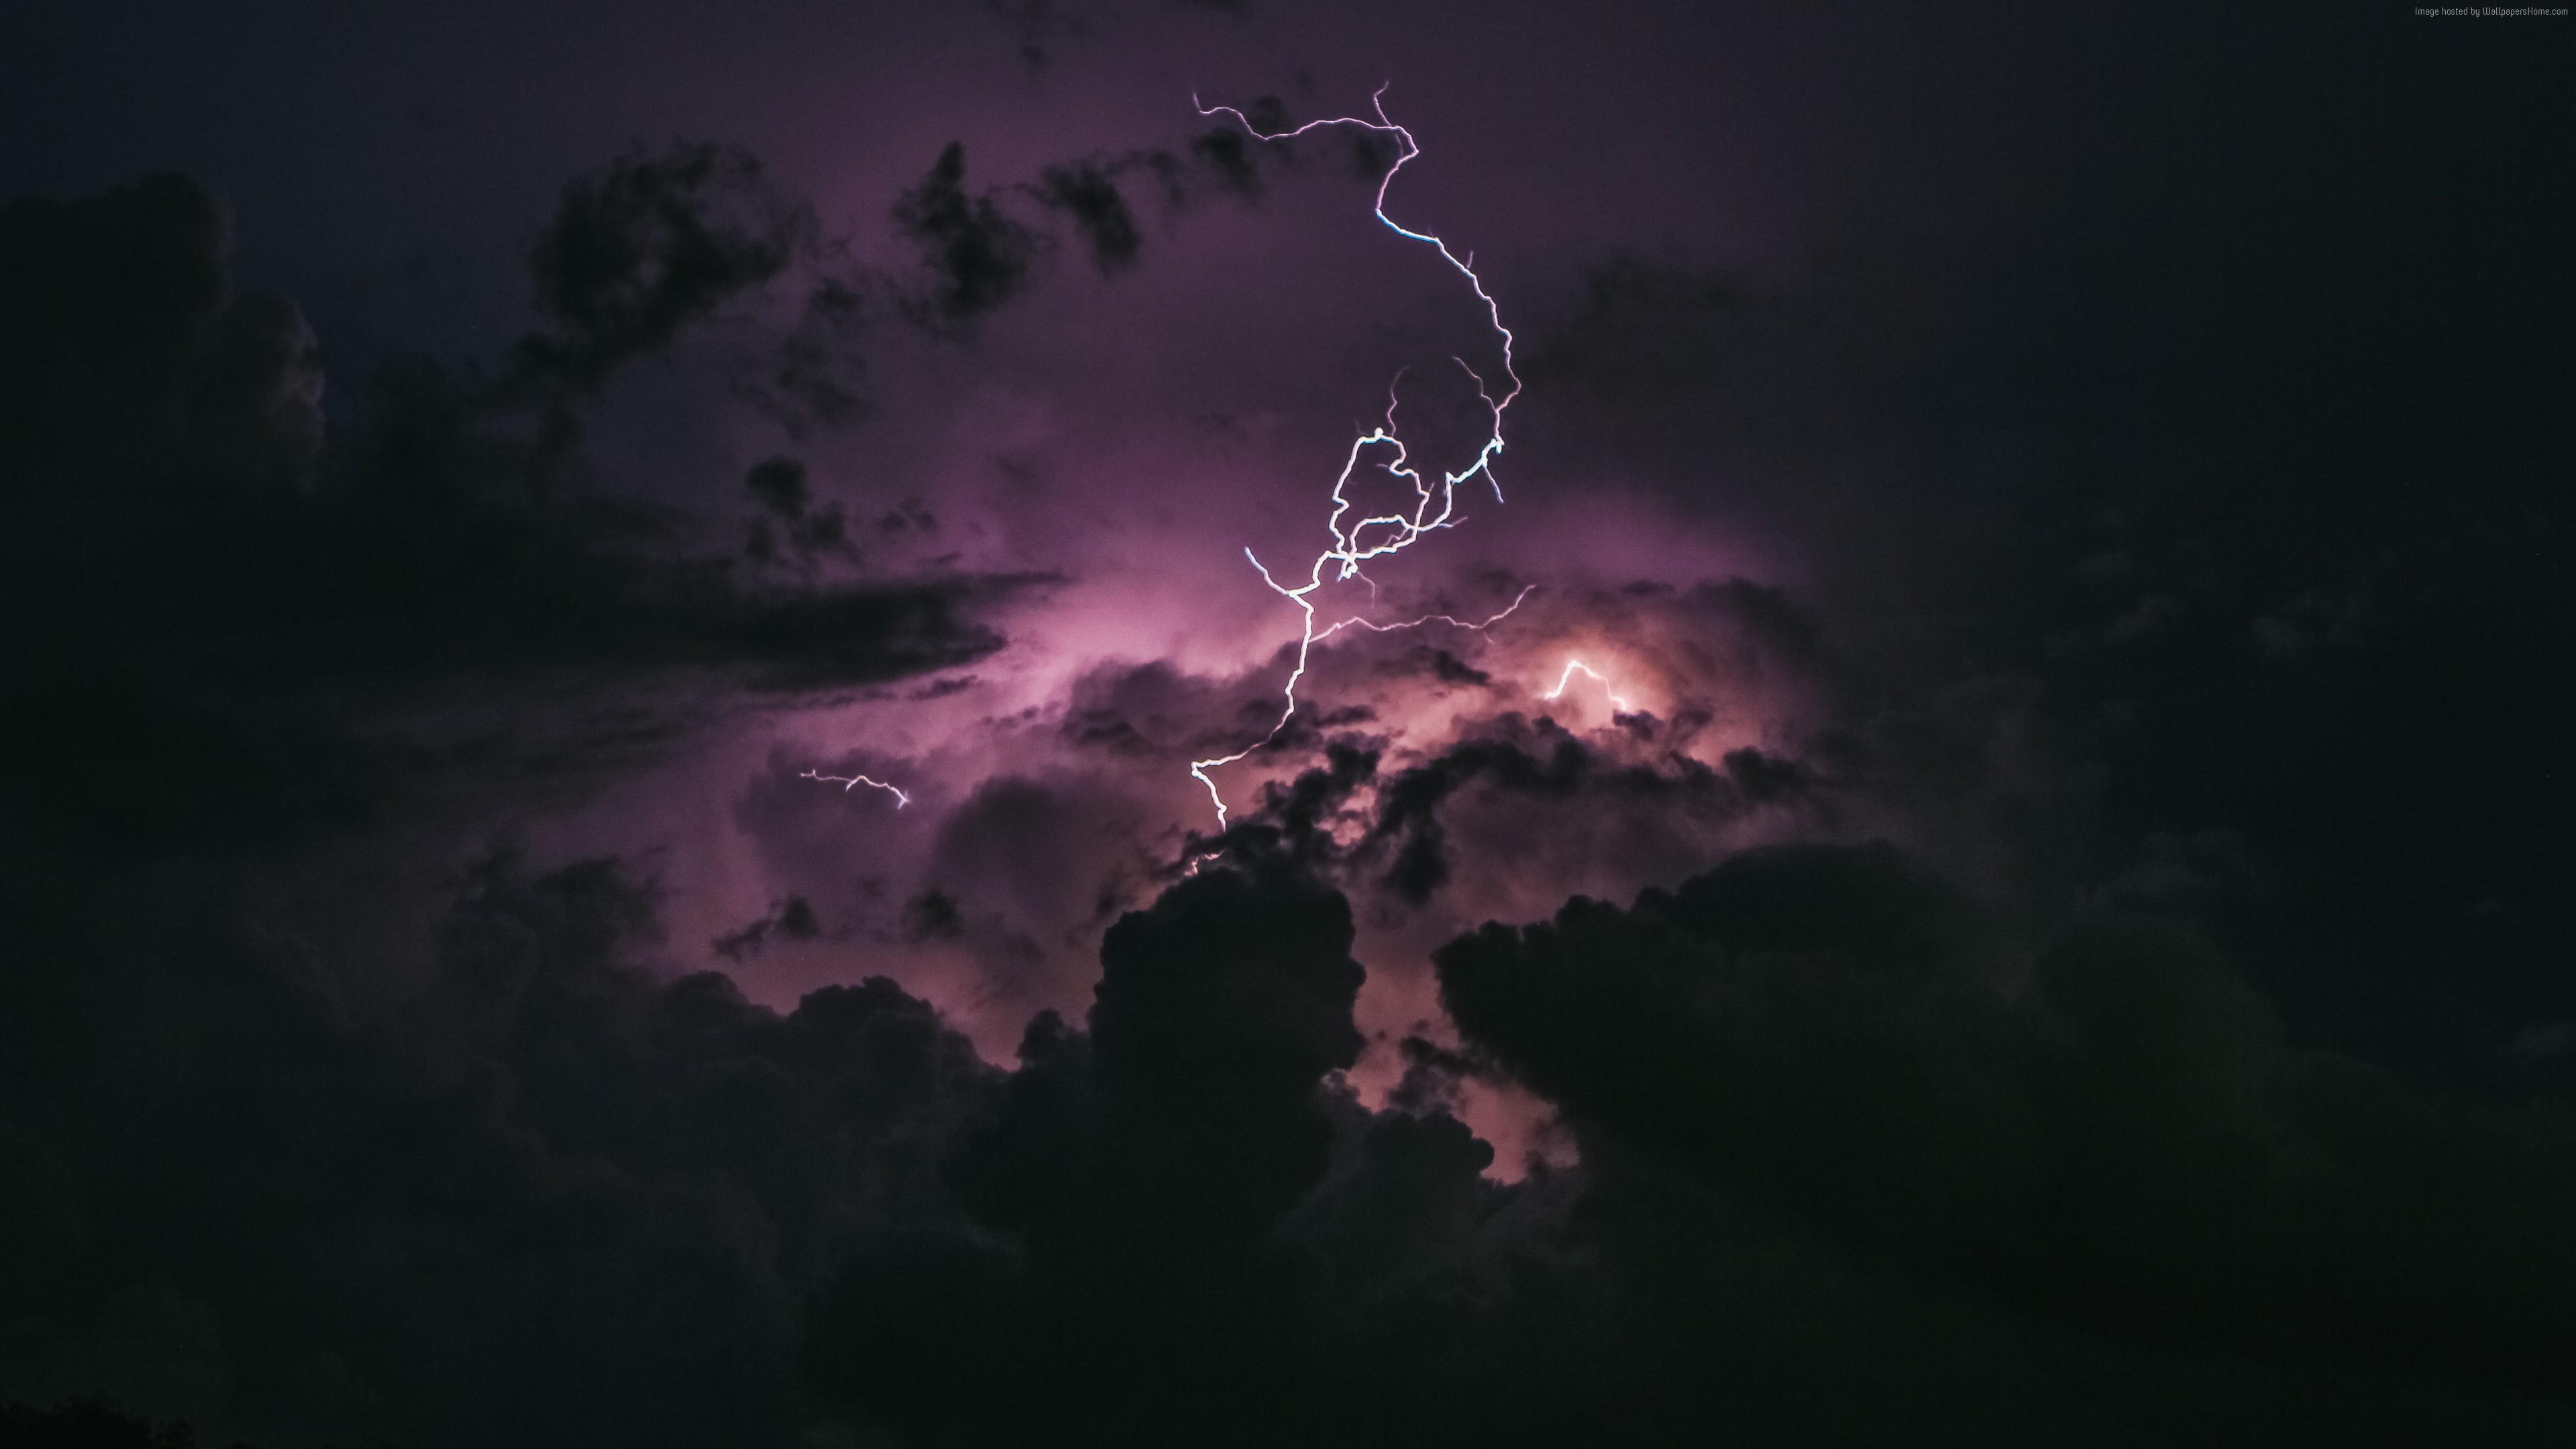 Wallpaper Storm Lightning 5K Nature 5k Download